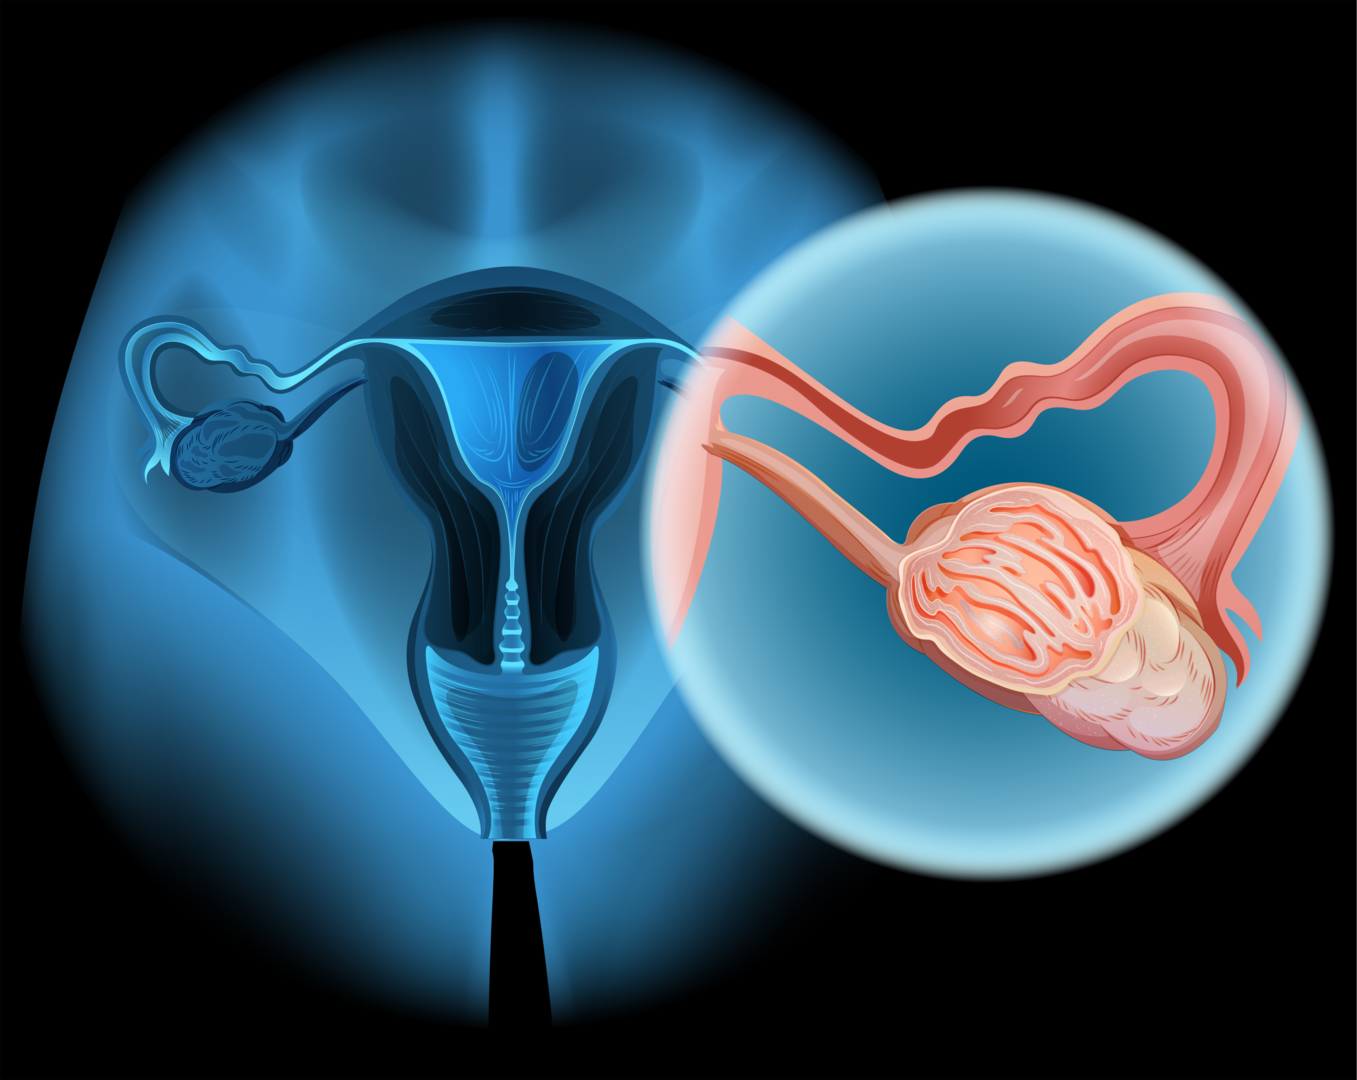 Ovarian cancer: no sure methods of early detection